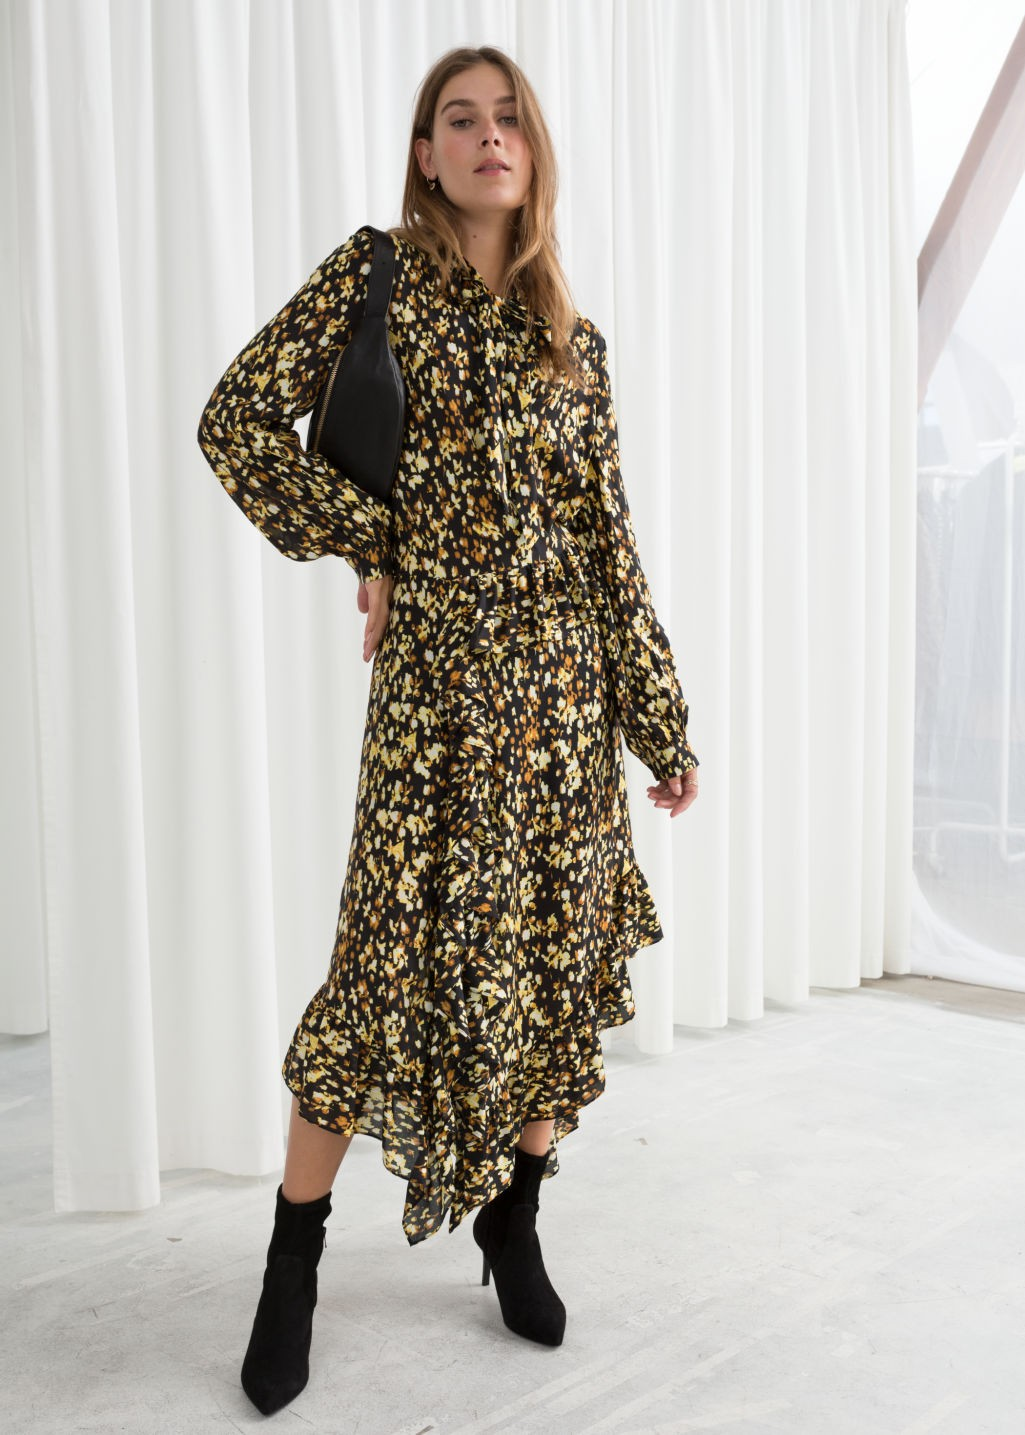 739711e8b46 15 Online Stores Similar to ModCloth - Have Clothes